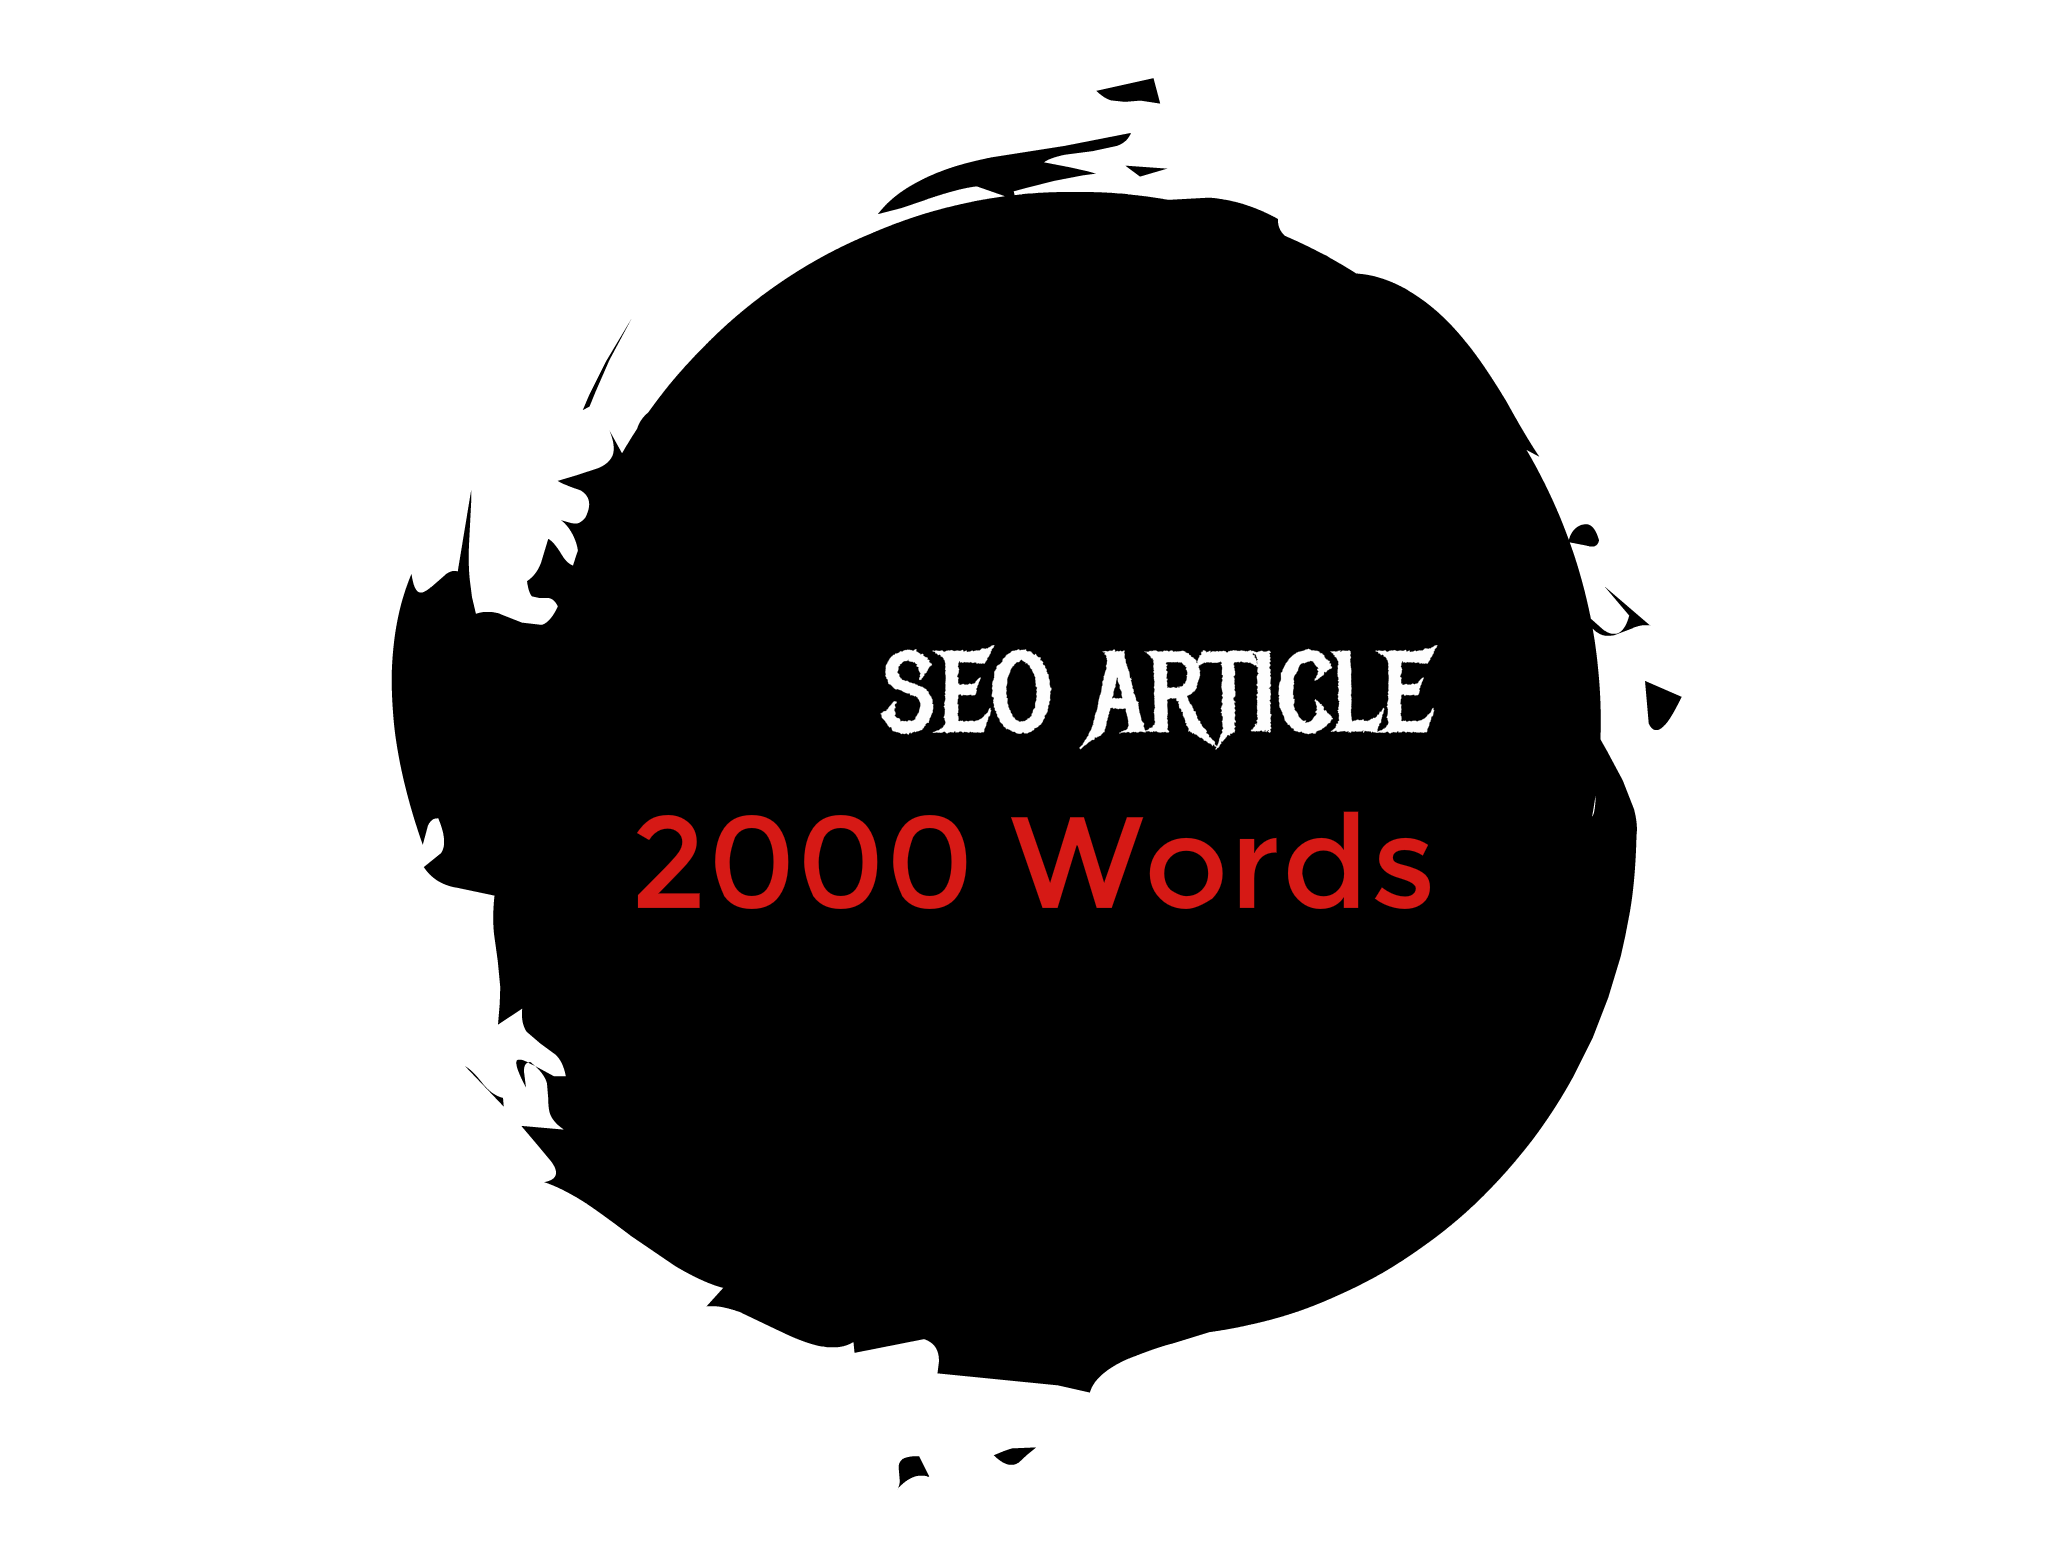 SEO Article 2000 Words